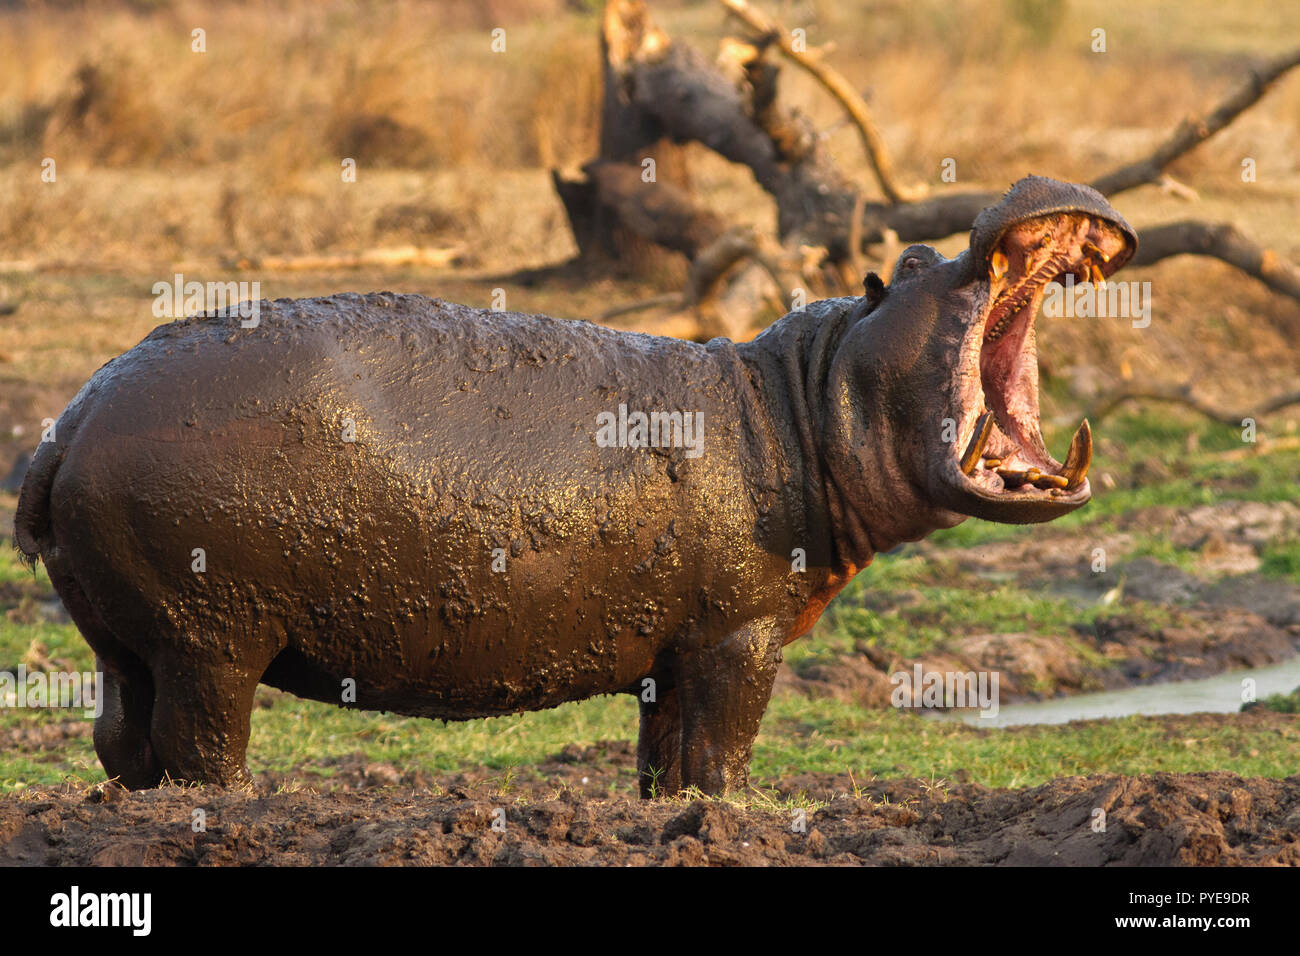 A hippo bull leaves the congestion of the hippo pool at Ikuu and makes exaggerated yawns as a clear threat gesture to others to make sure they keep cl - Stock Image